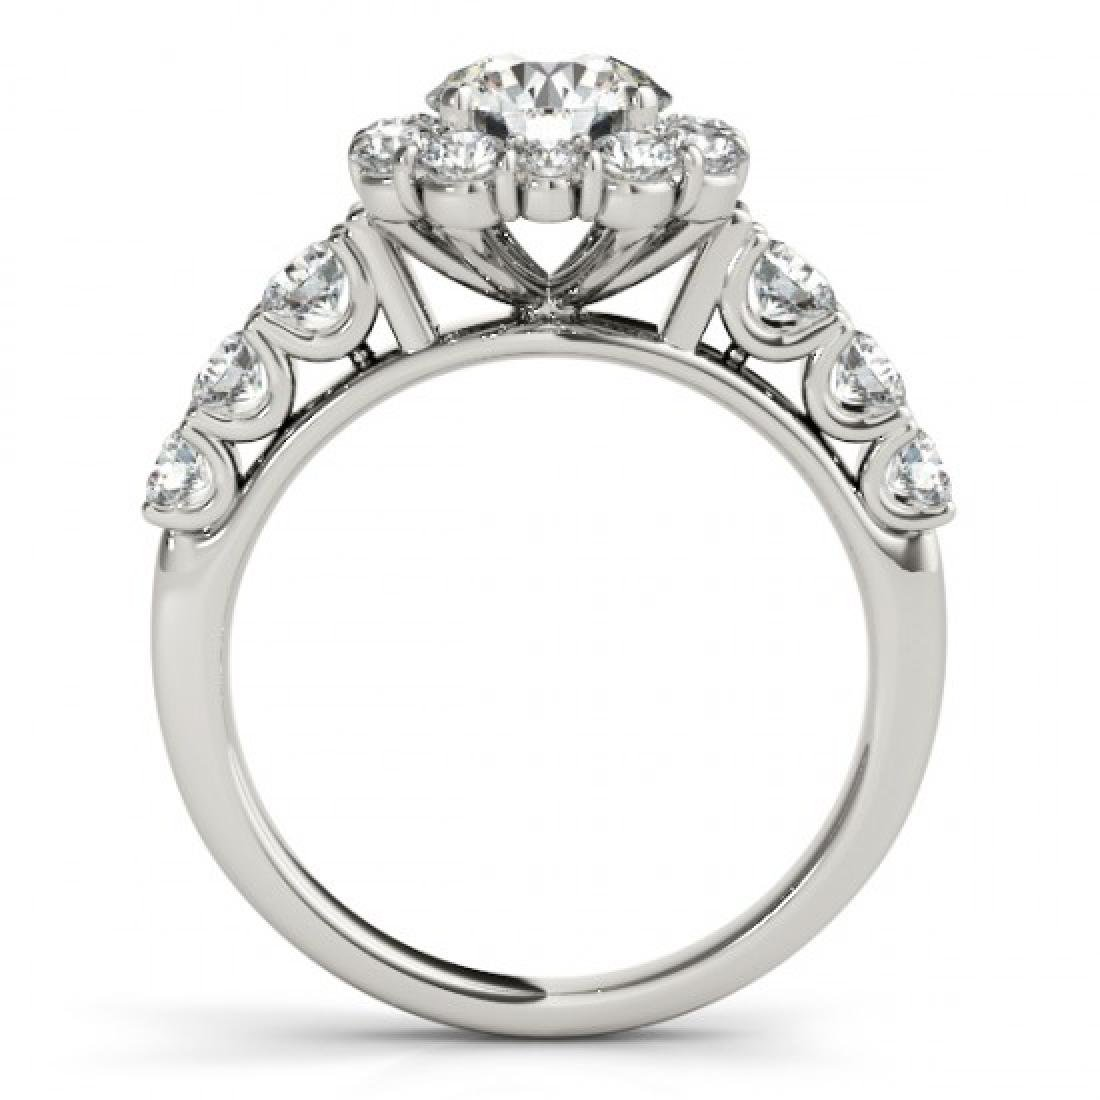 2.9 CTW Certified VS/SI Diamond Solitaire Halo Ring 14K - 2